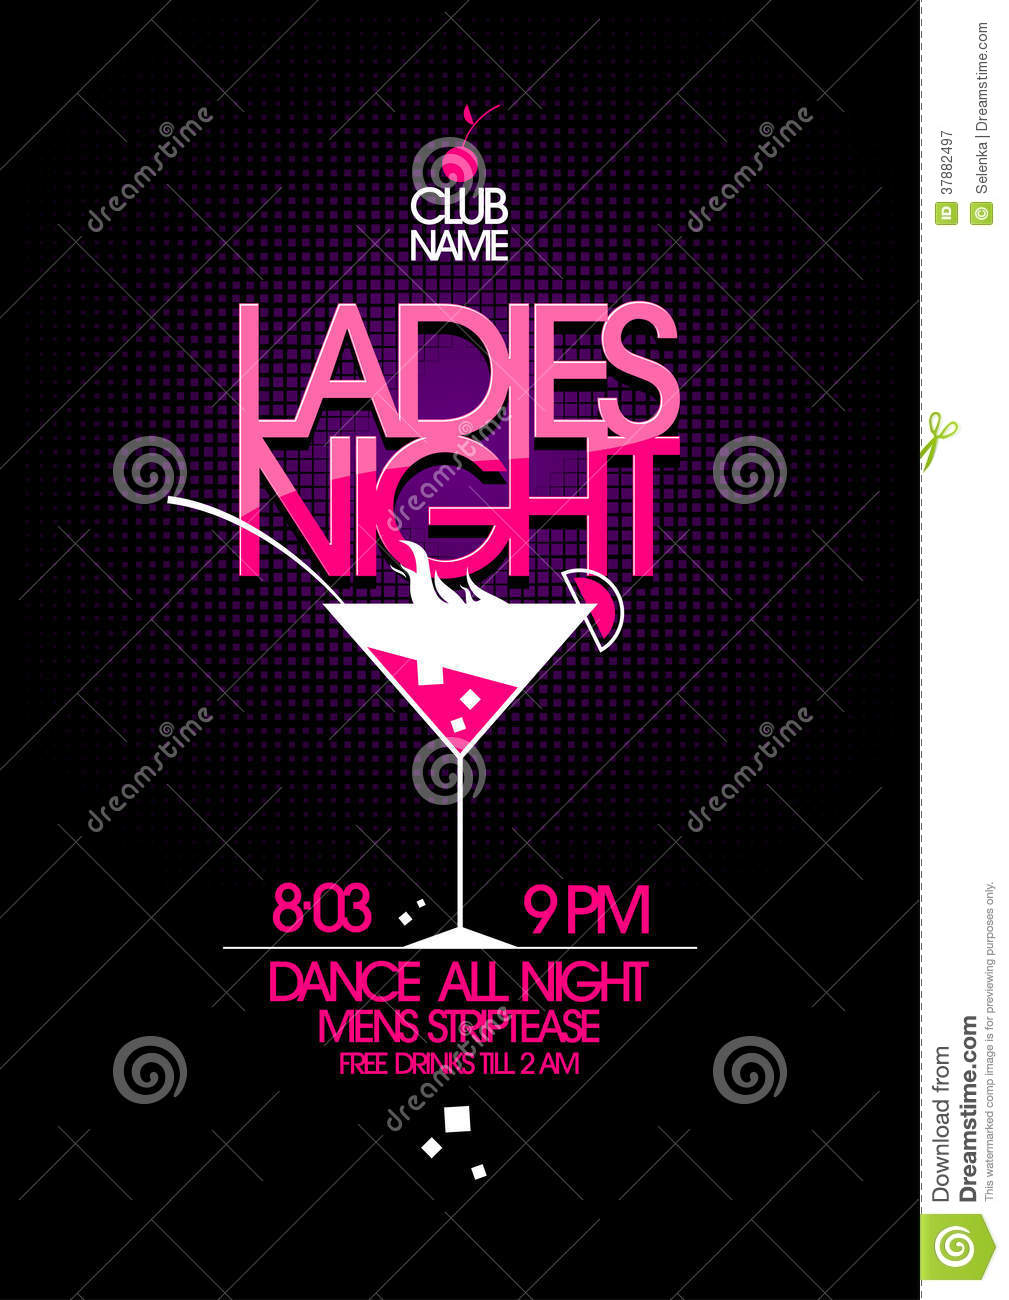 ladies night party design royalty free stock photography